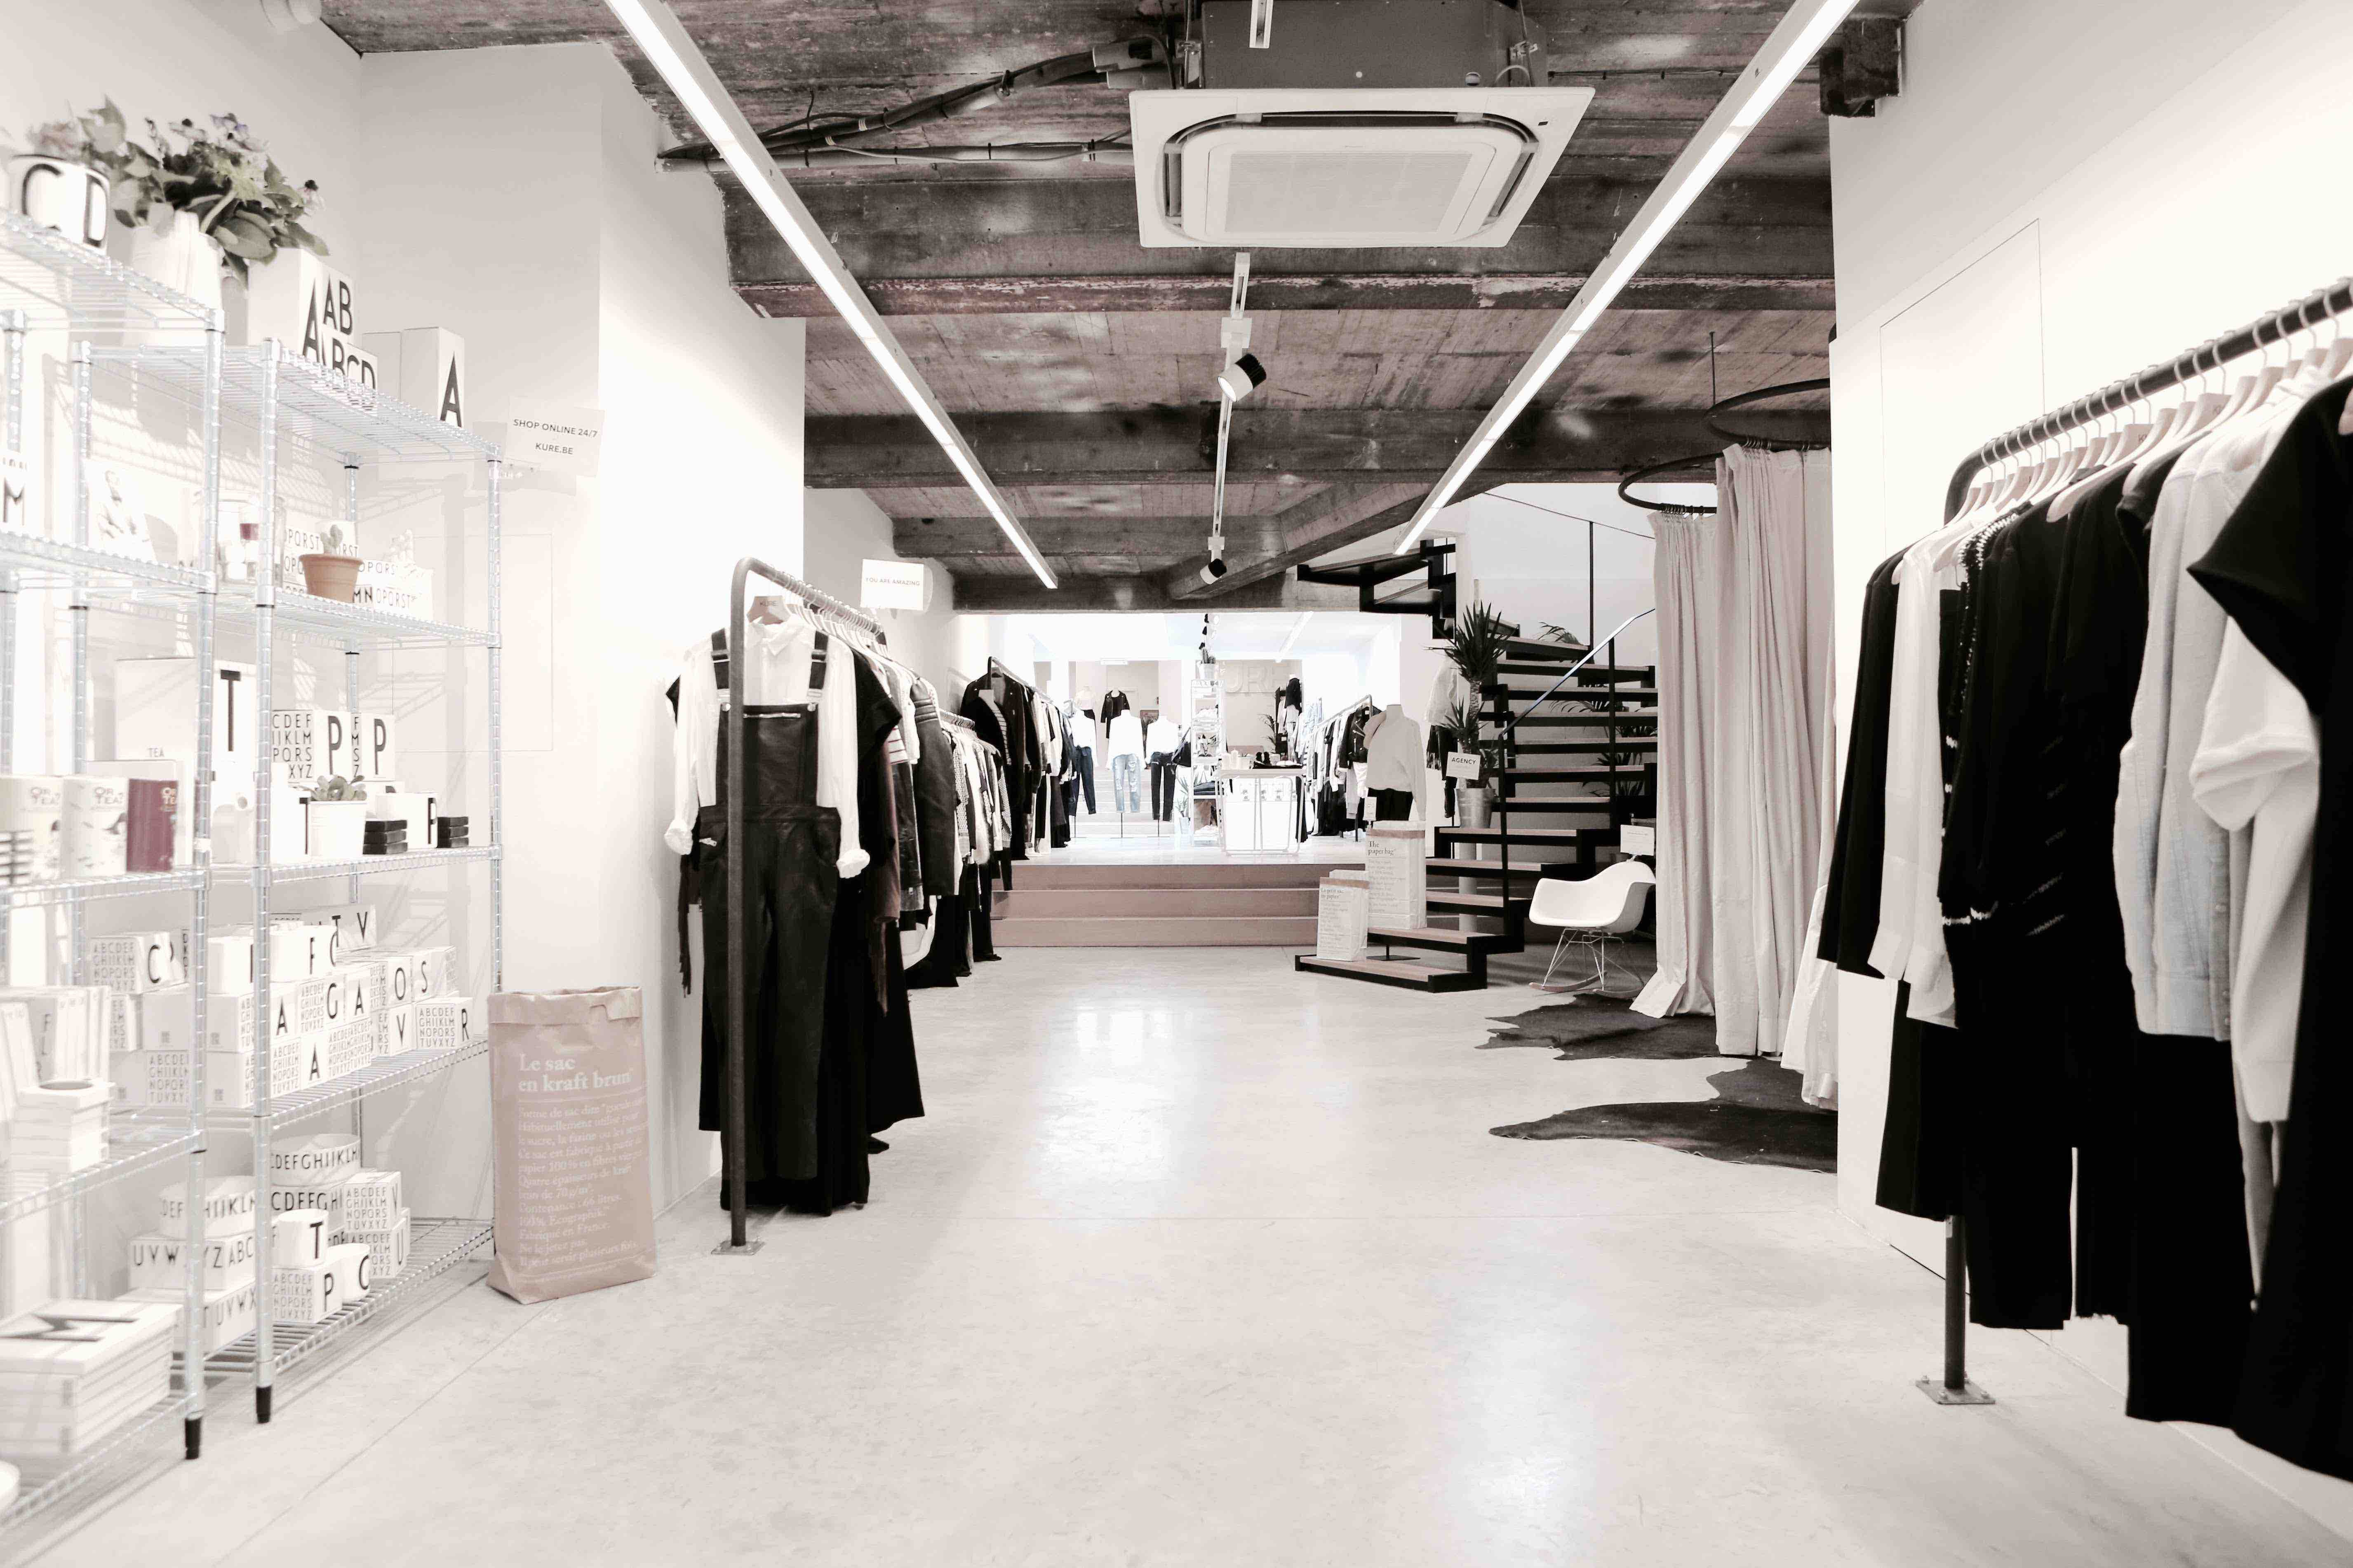 bf29362ddd95 KURE, one of Brussels' fashion sanctuaries | Courtesy of KURE